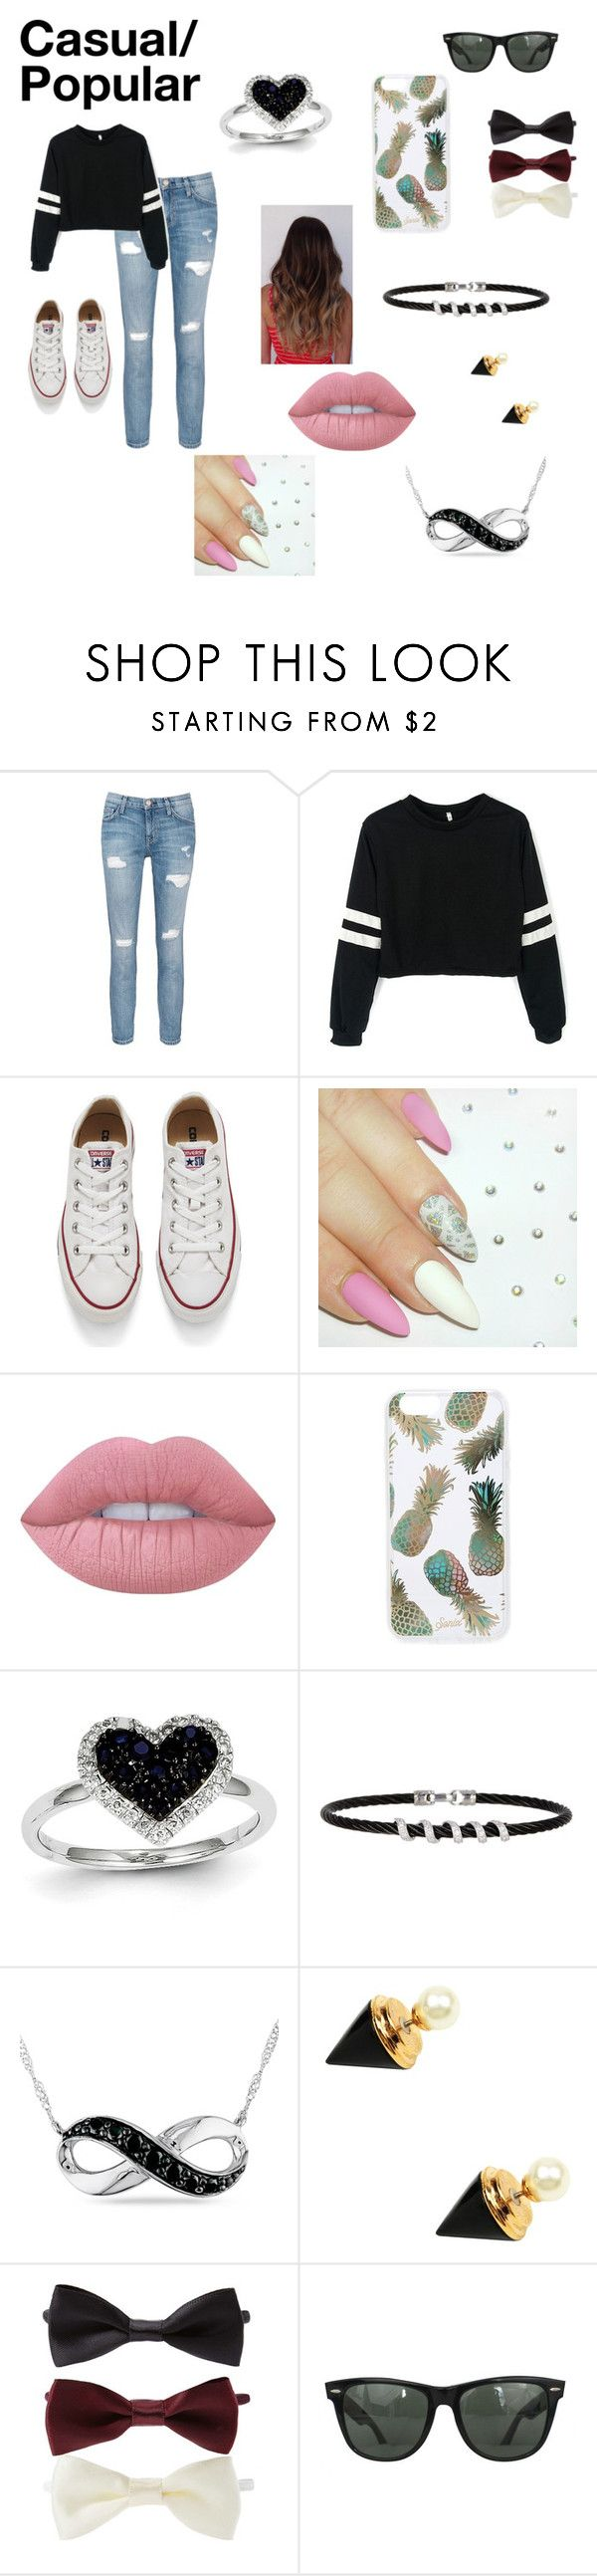 """""""Casual Popular Girl Outfit"""" by lexie-skye33 on Polyvore featuring Current/Elliott, Converse, Lime Crime, Sonix, Kevin Jewelers, Alor, Amour, Eye Candy, Forever 21 and Ray-Ban"""